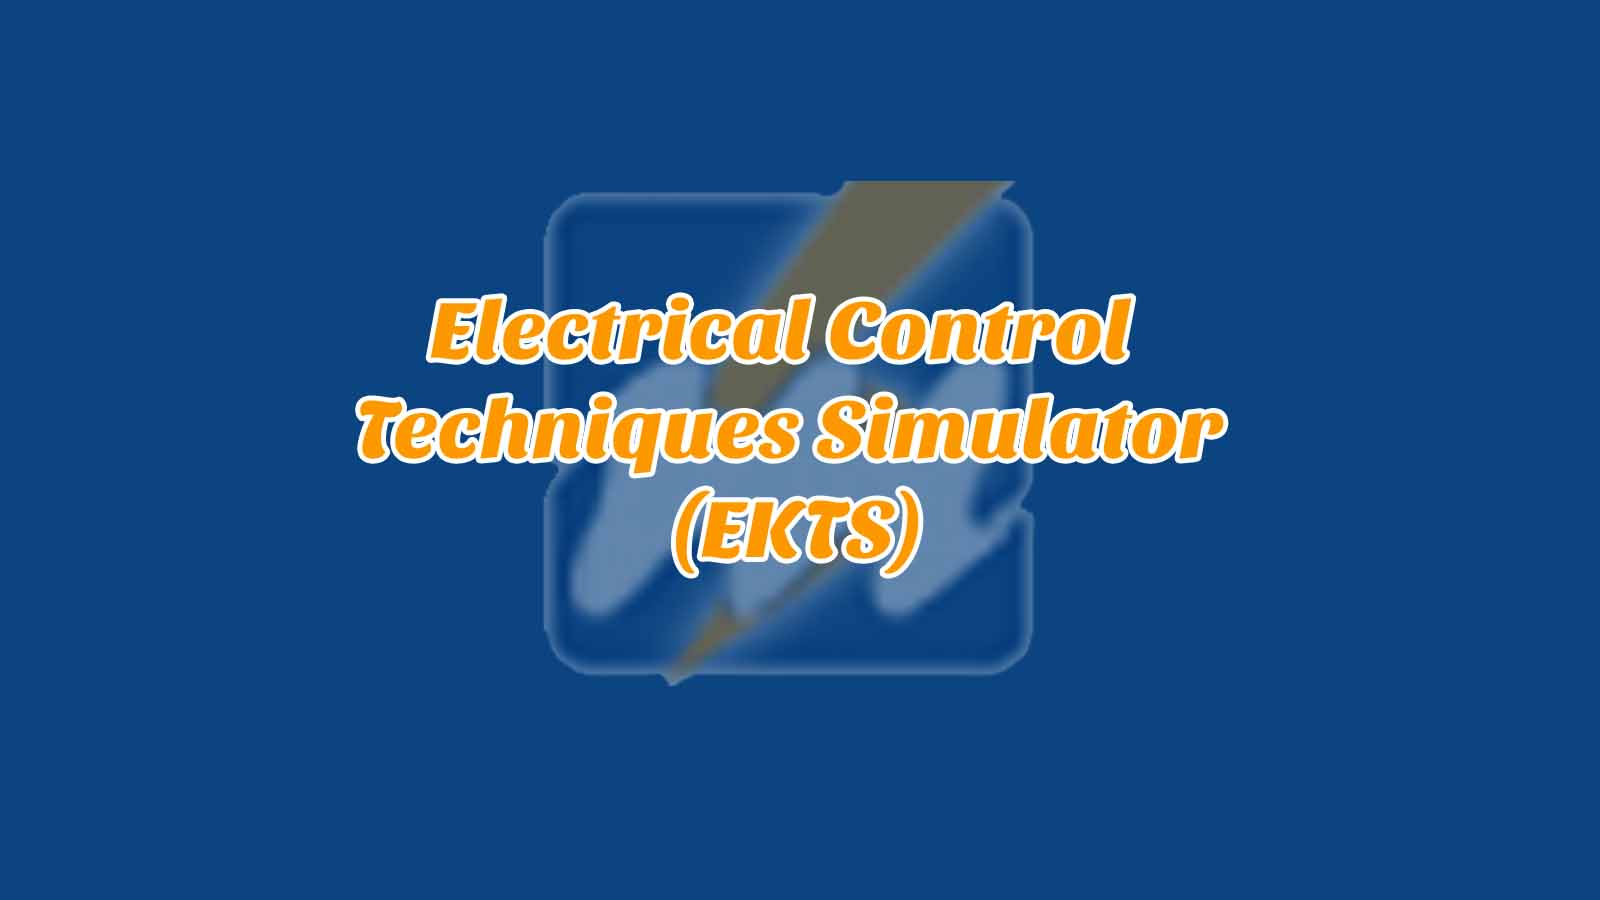 Daftar Isi Electrical Control Techniques Simulator (EKTS)